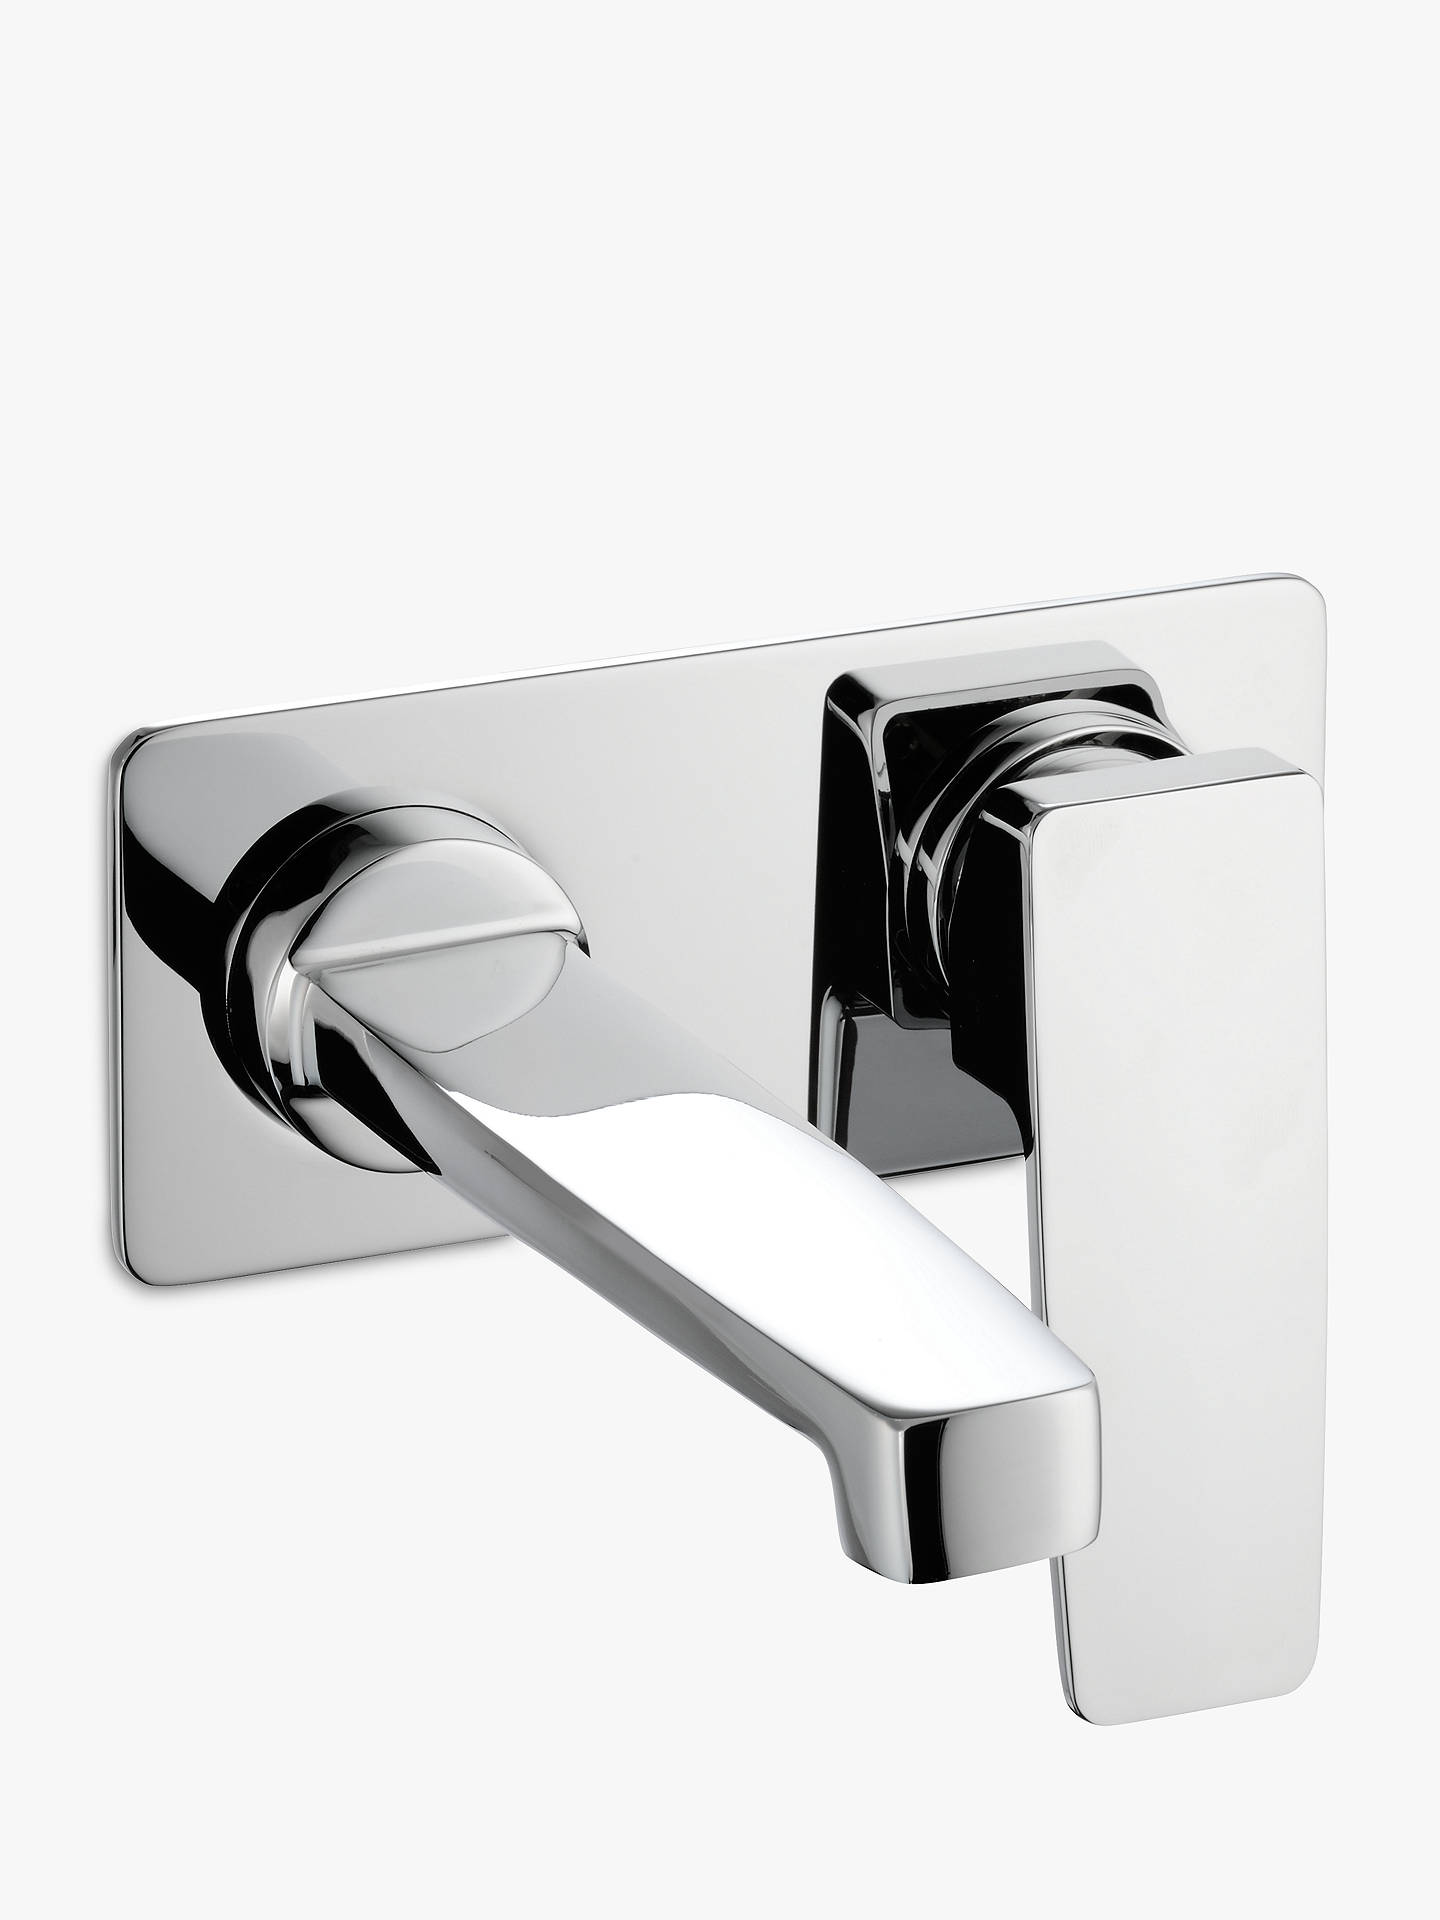 BuyJohn Lewis & Partners Spey Wall Mounted Basin/Bath Filler Bathroom Tap, Chrome Online at johnlewis.com